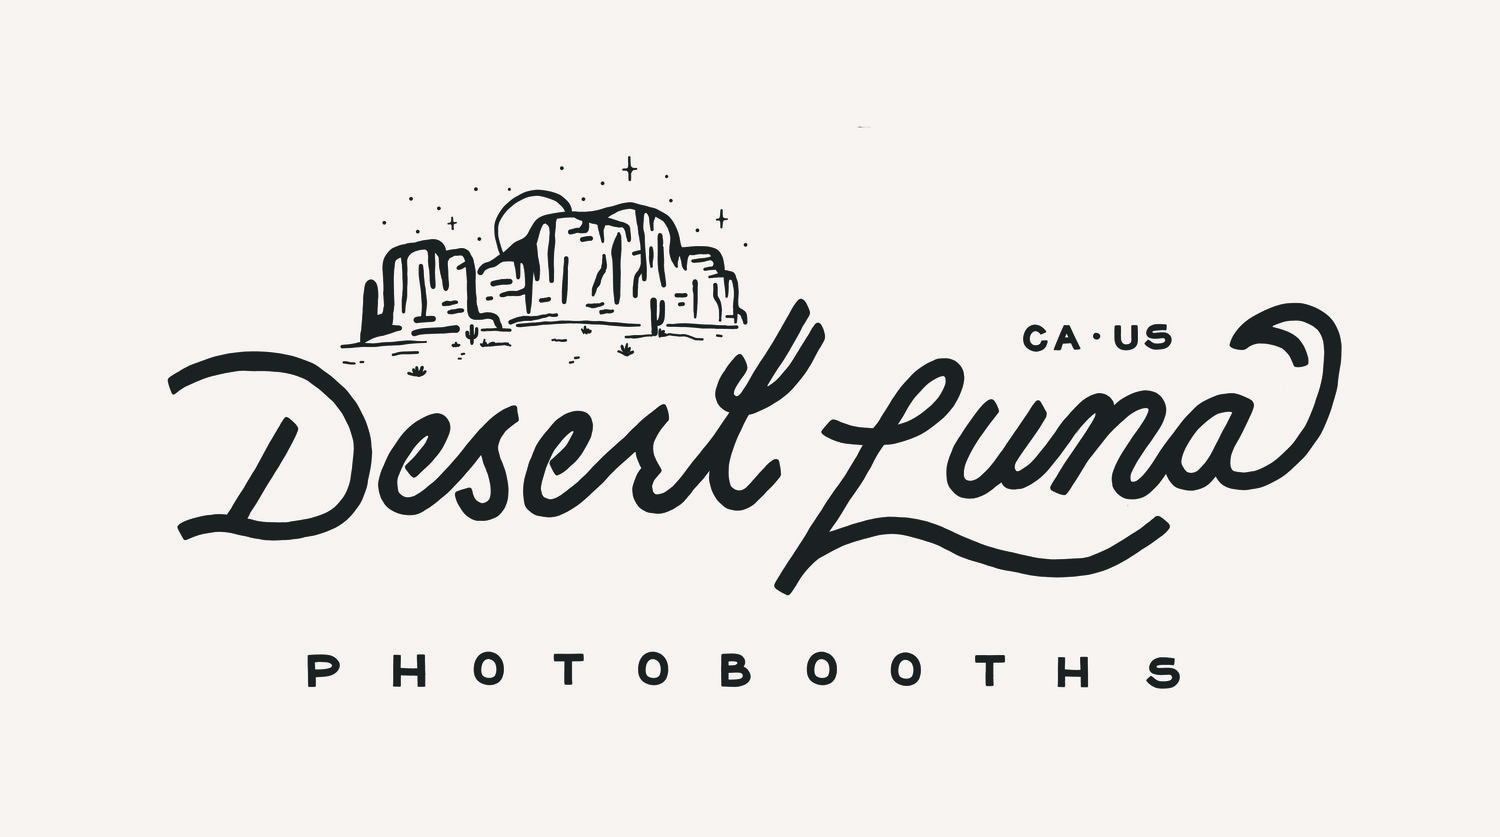 Desert Luna Photobooths | CA Photo Booth Rental